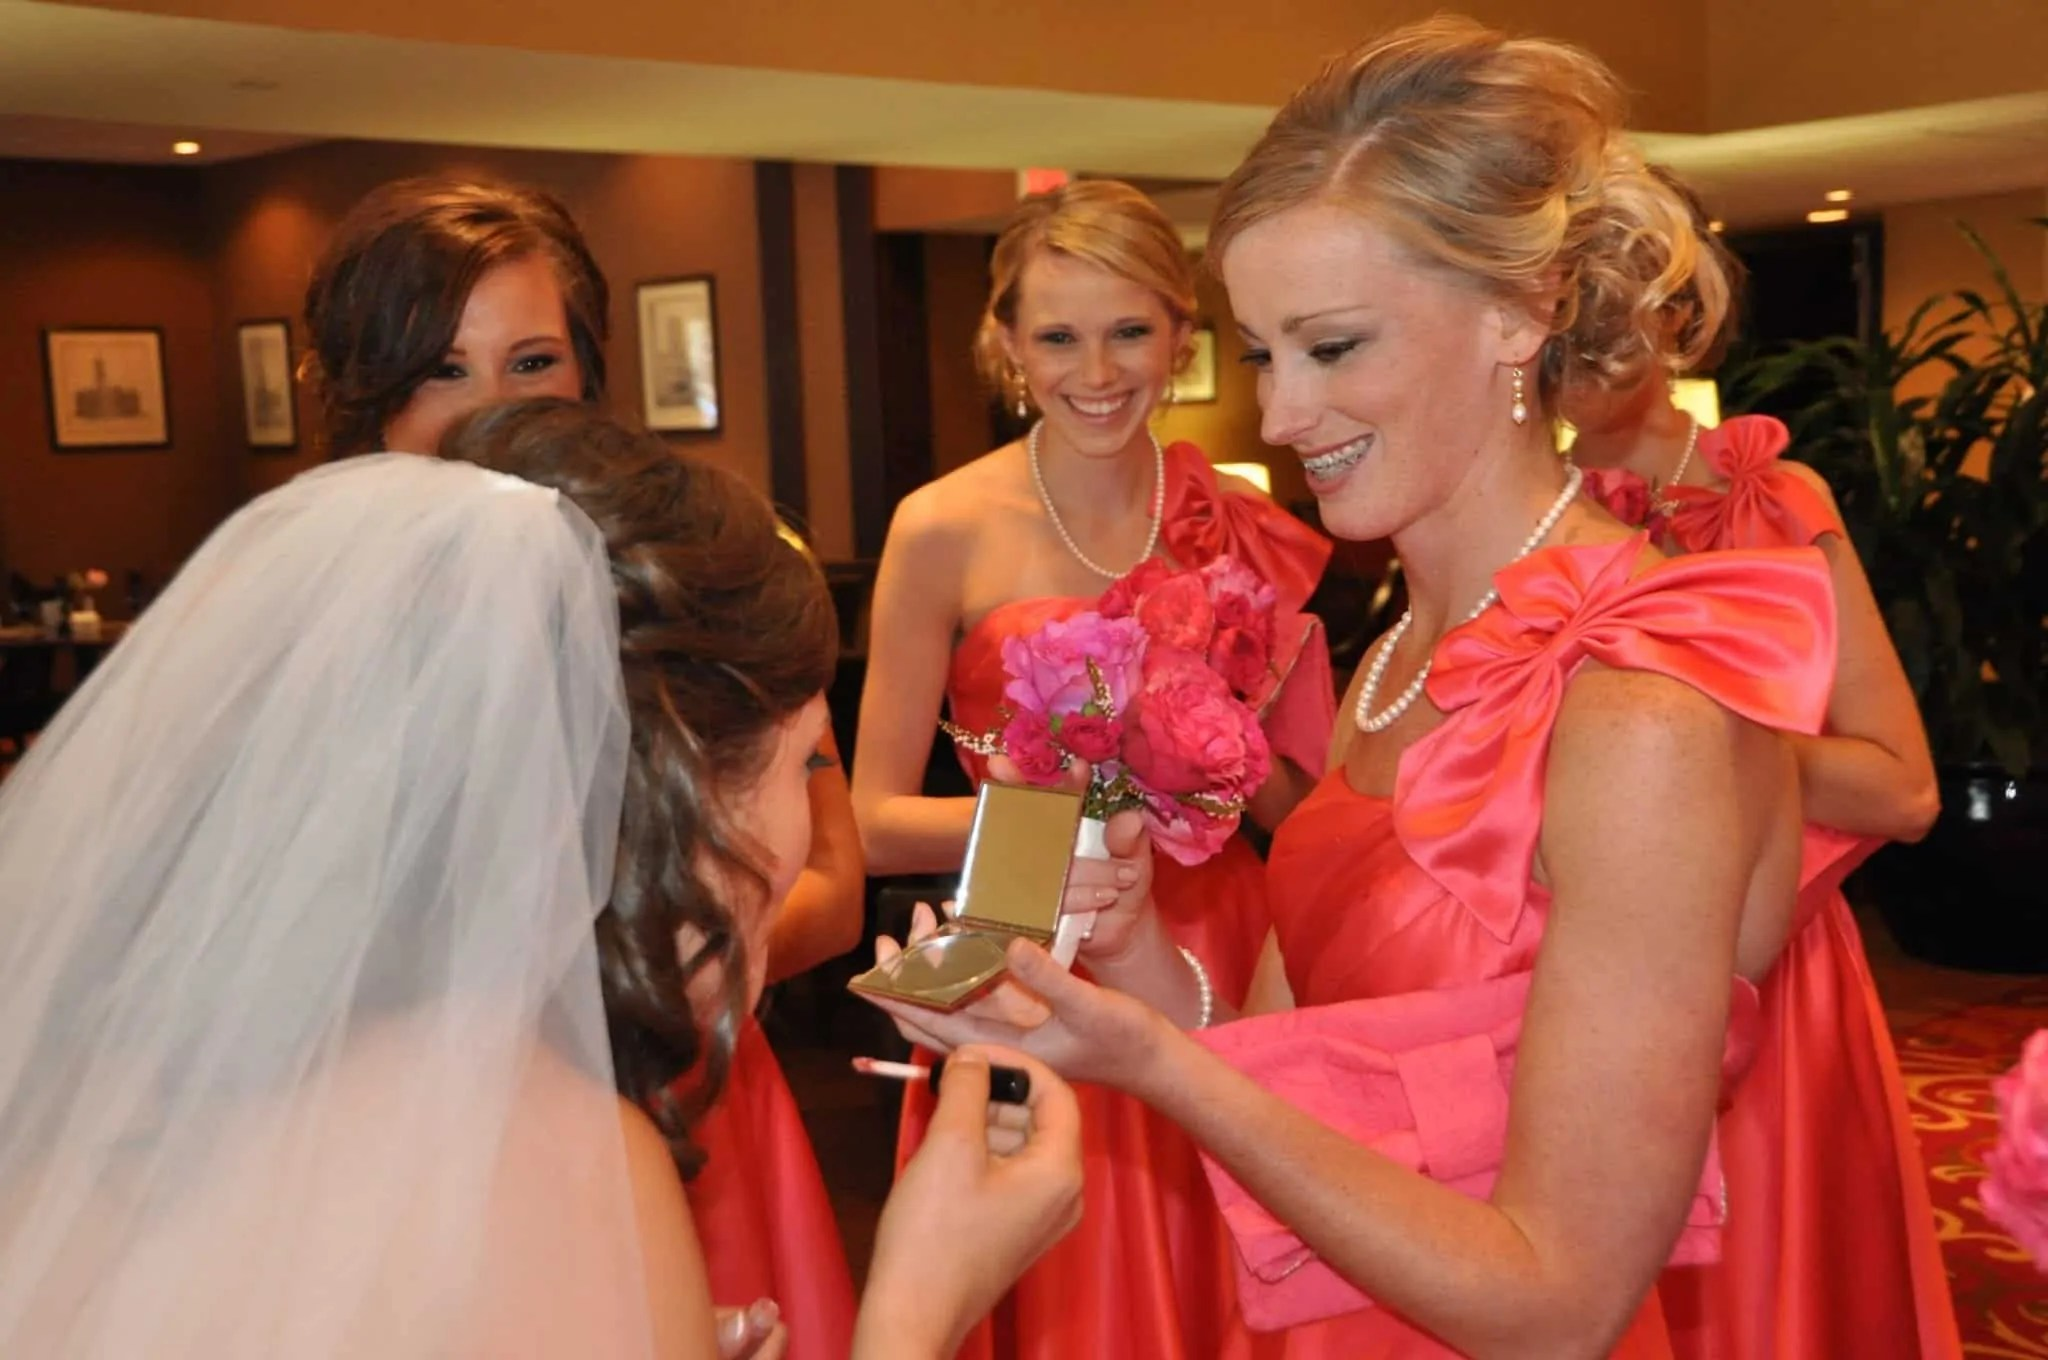 Wedding Recap: Our First Look - Treble in the Kitchen